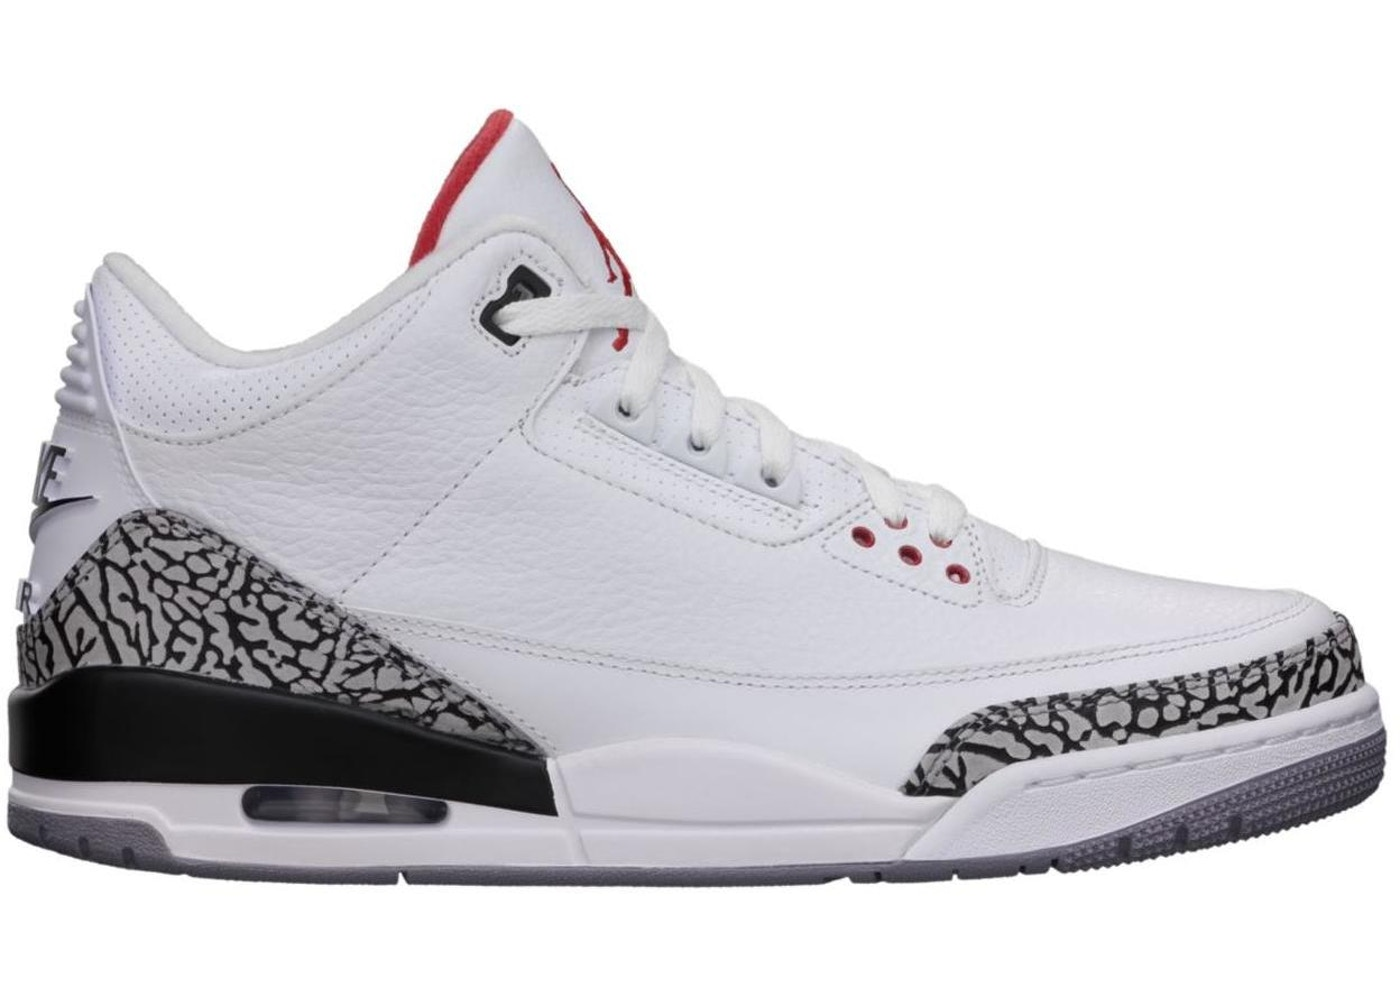 db0b95786b2f6 Jordan 3 Retro White Cement ( 88 Dunk Contest 2013) - 580775-160